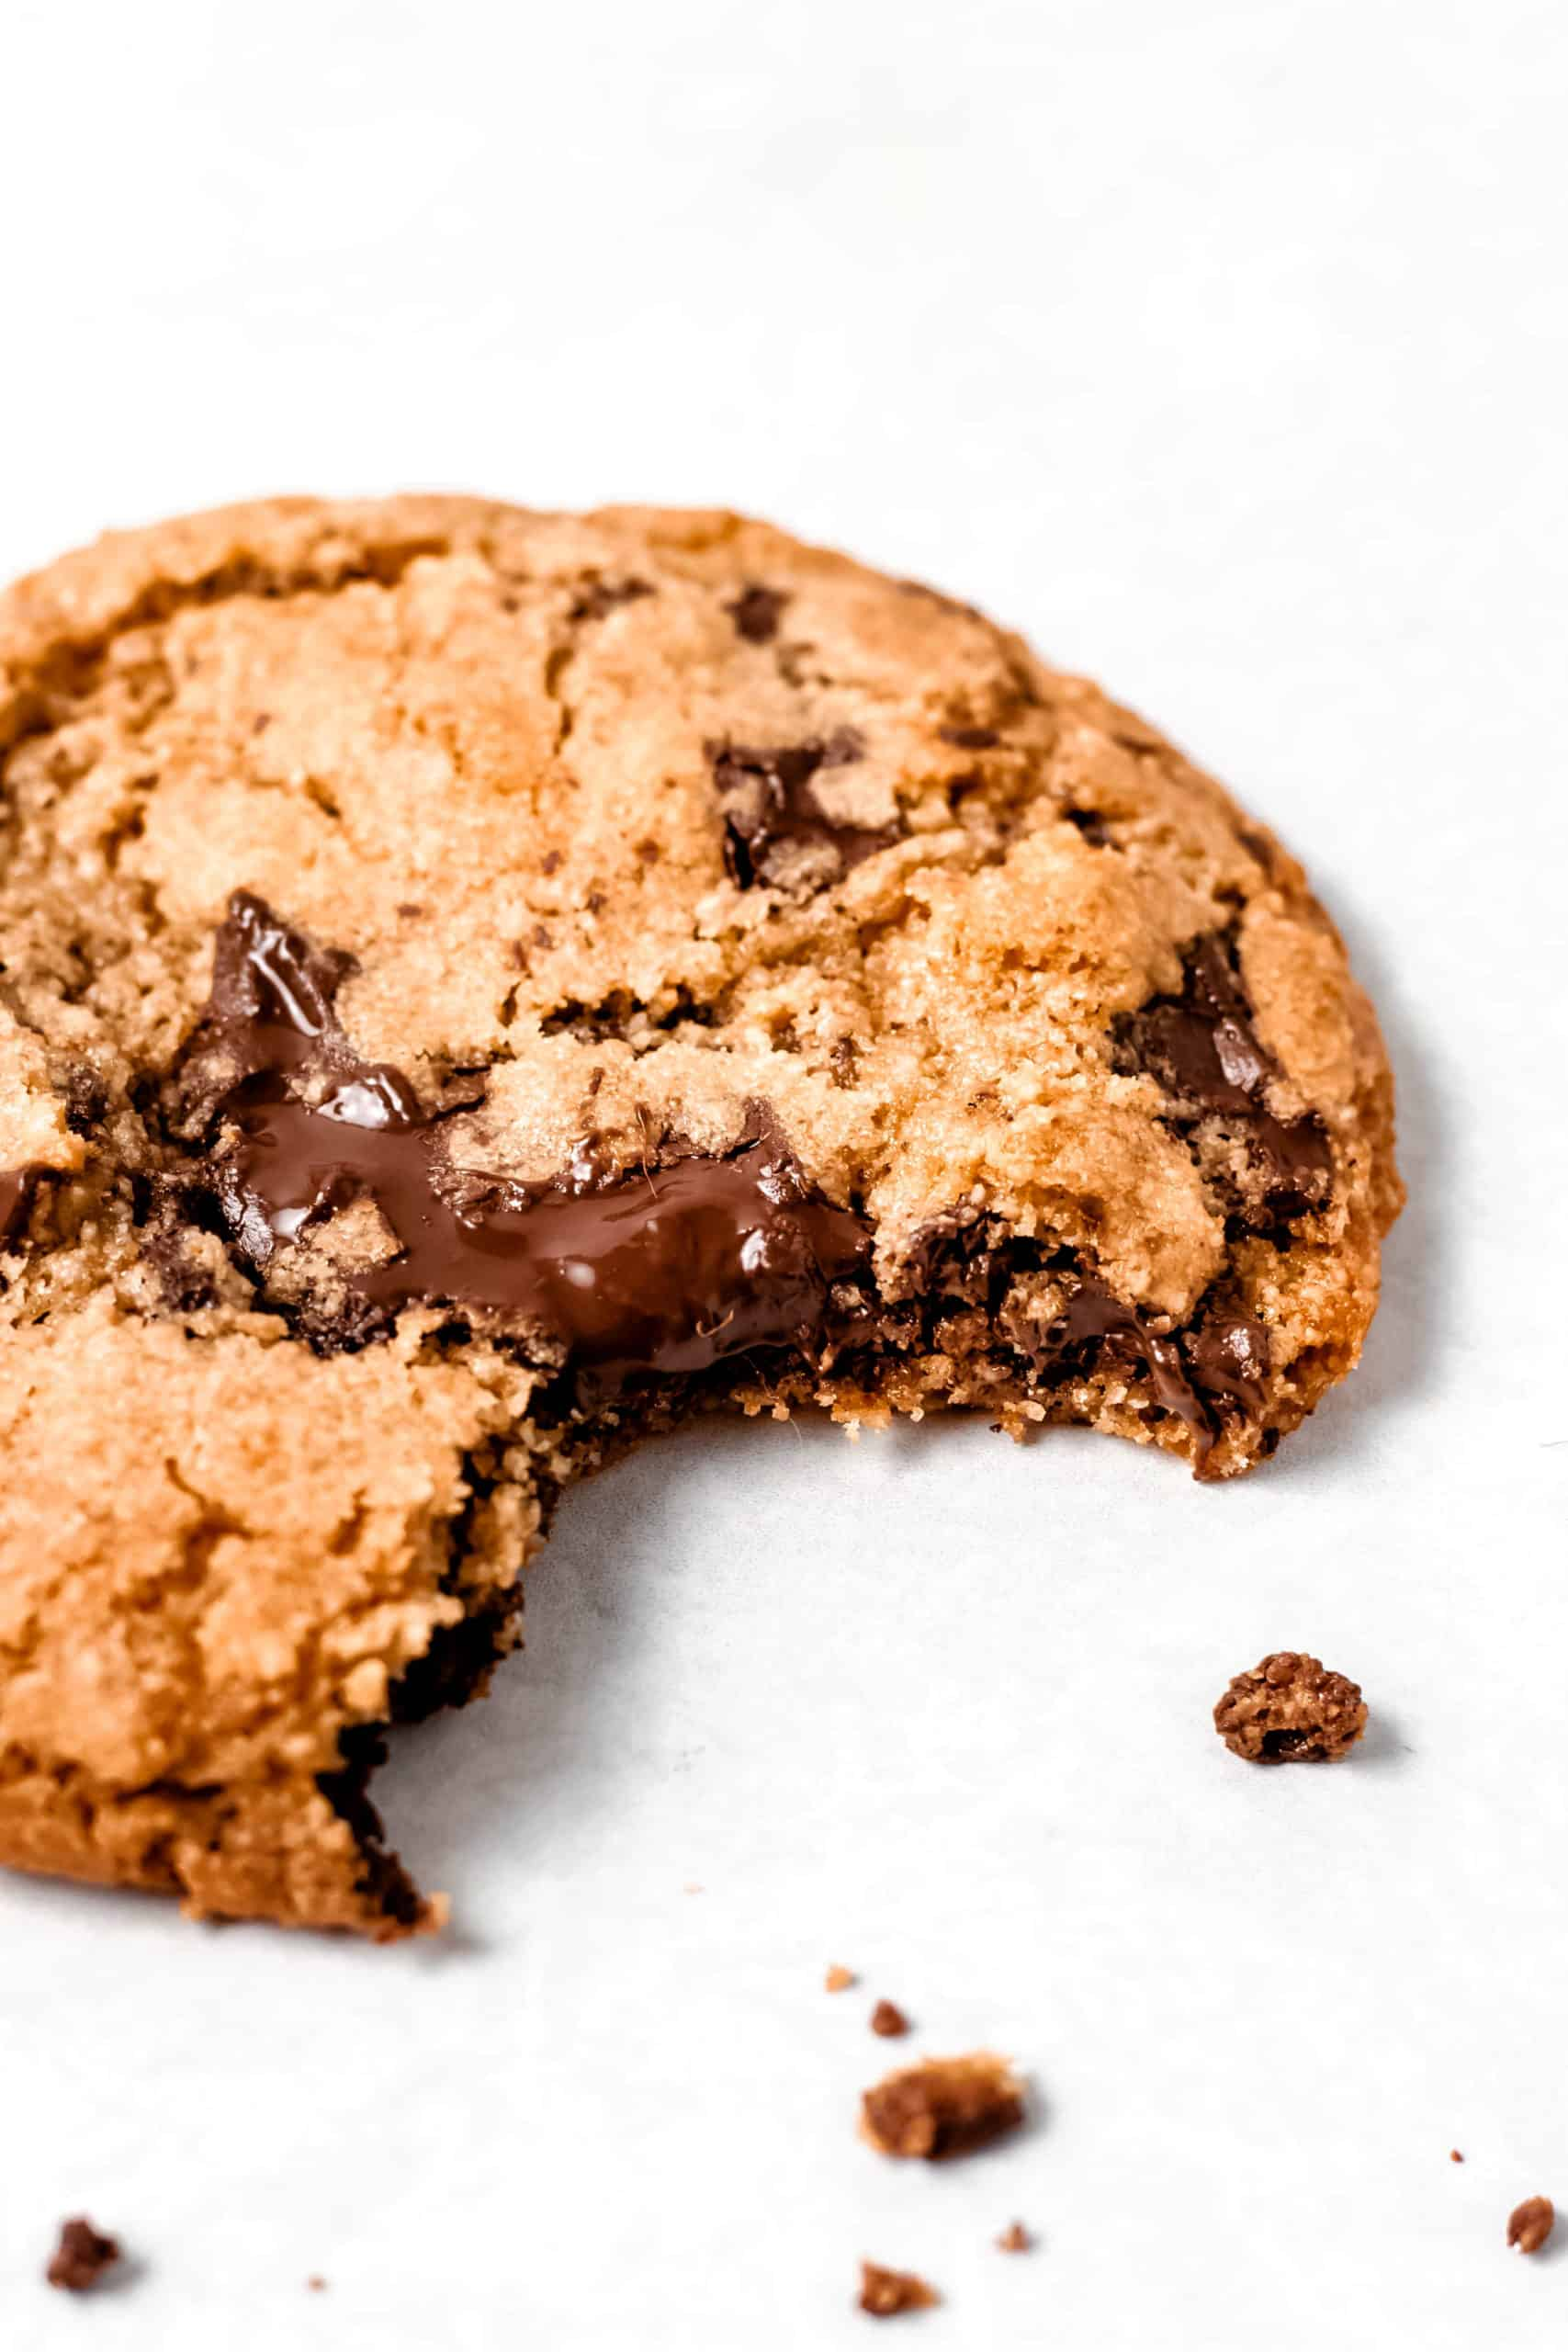 Crisp and chewy gluten free chocolate chip cookie with bite taken out of it